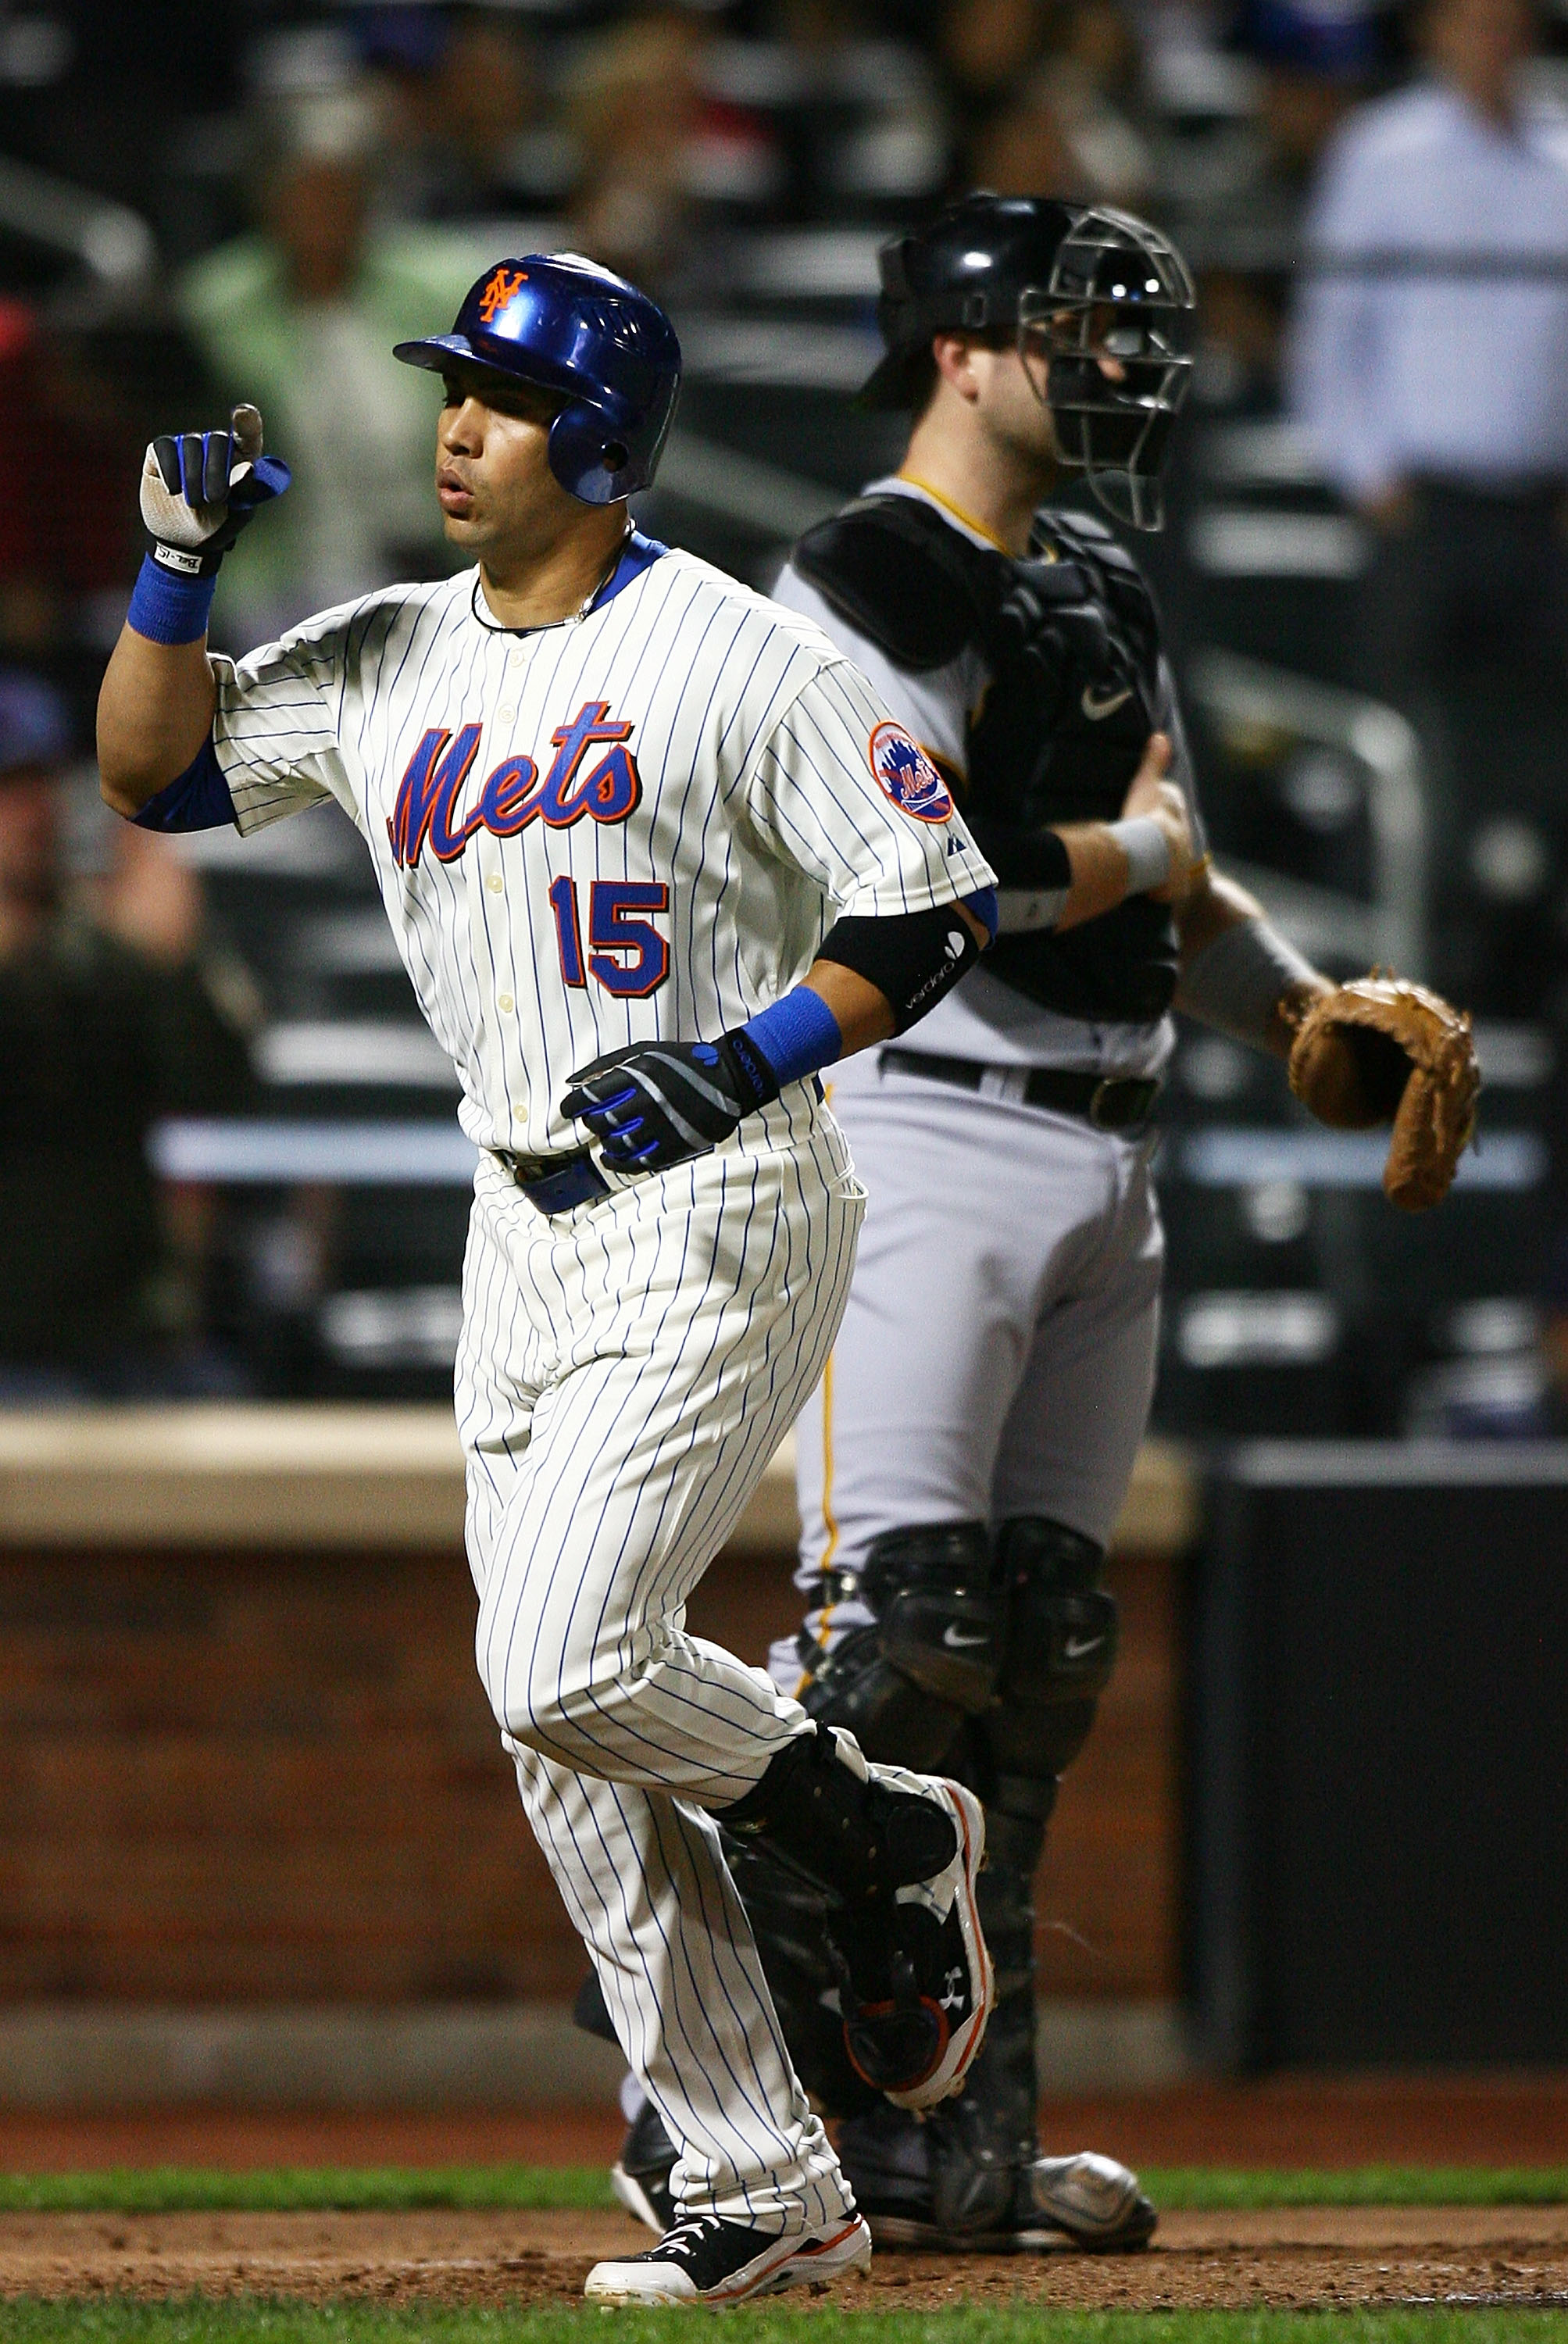 NEW YORK - SEPTEMBER 14:  Carlos Beltran #15 of the New York Mets celebrates after hitting a home run in the third inning against the Pittsburgh Pirates on September 14, 2010 at Citi Field in the Flushing neighborhood of the Queens borough of New York Cit